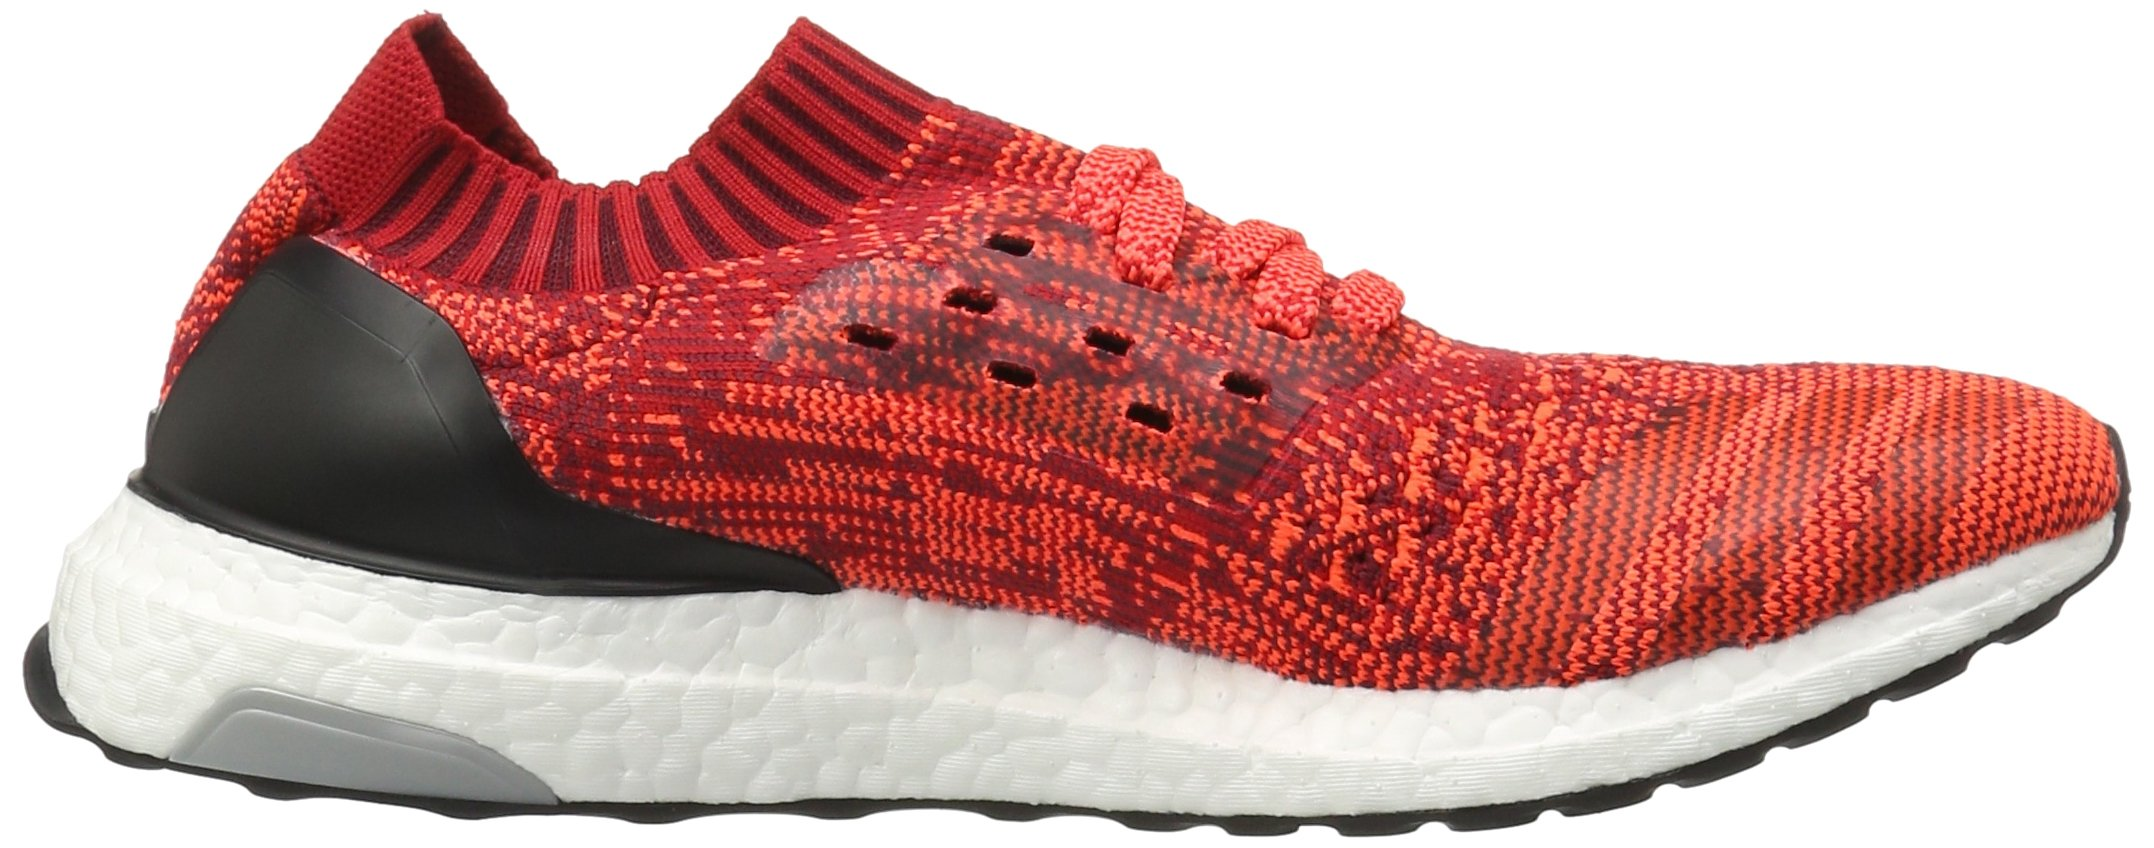 81IHqr0yK3L - adidas Ultra Boost Uncaged Running Shoes